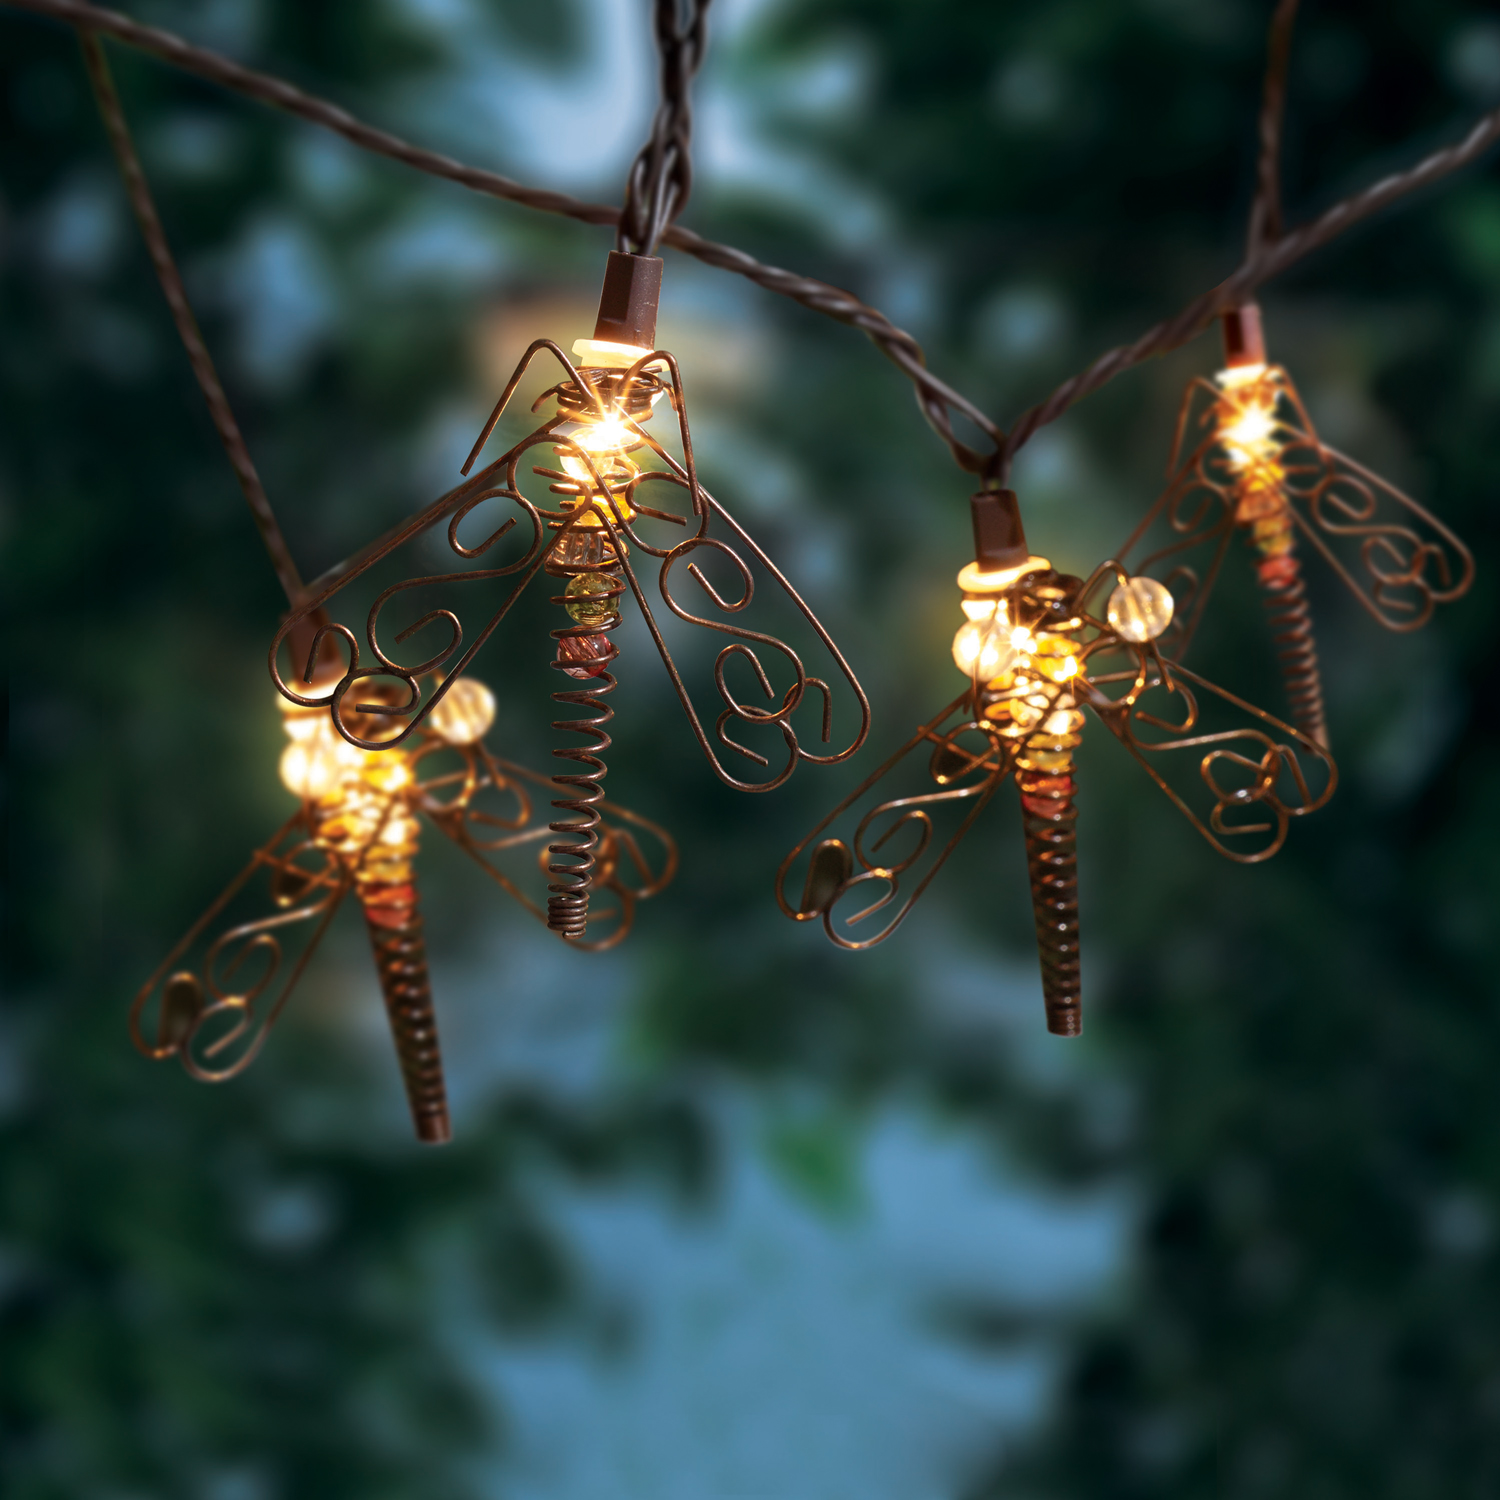 10ct String to String Metal Dragonfly Light Set